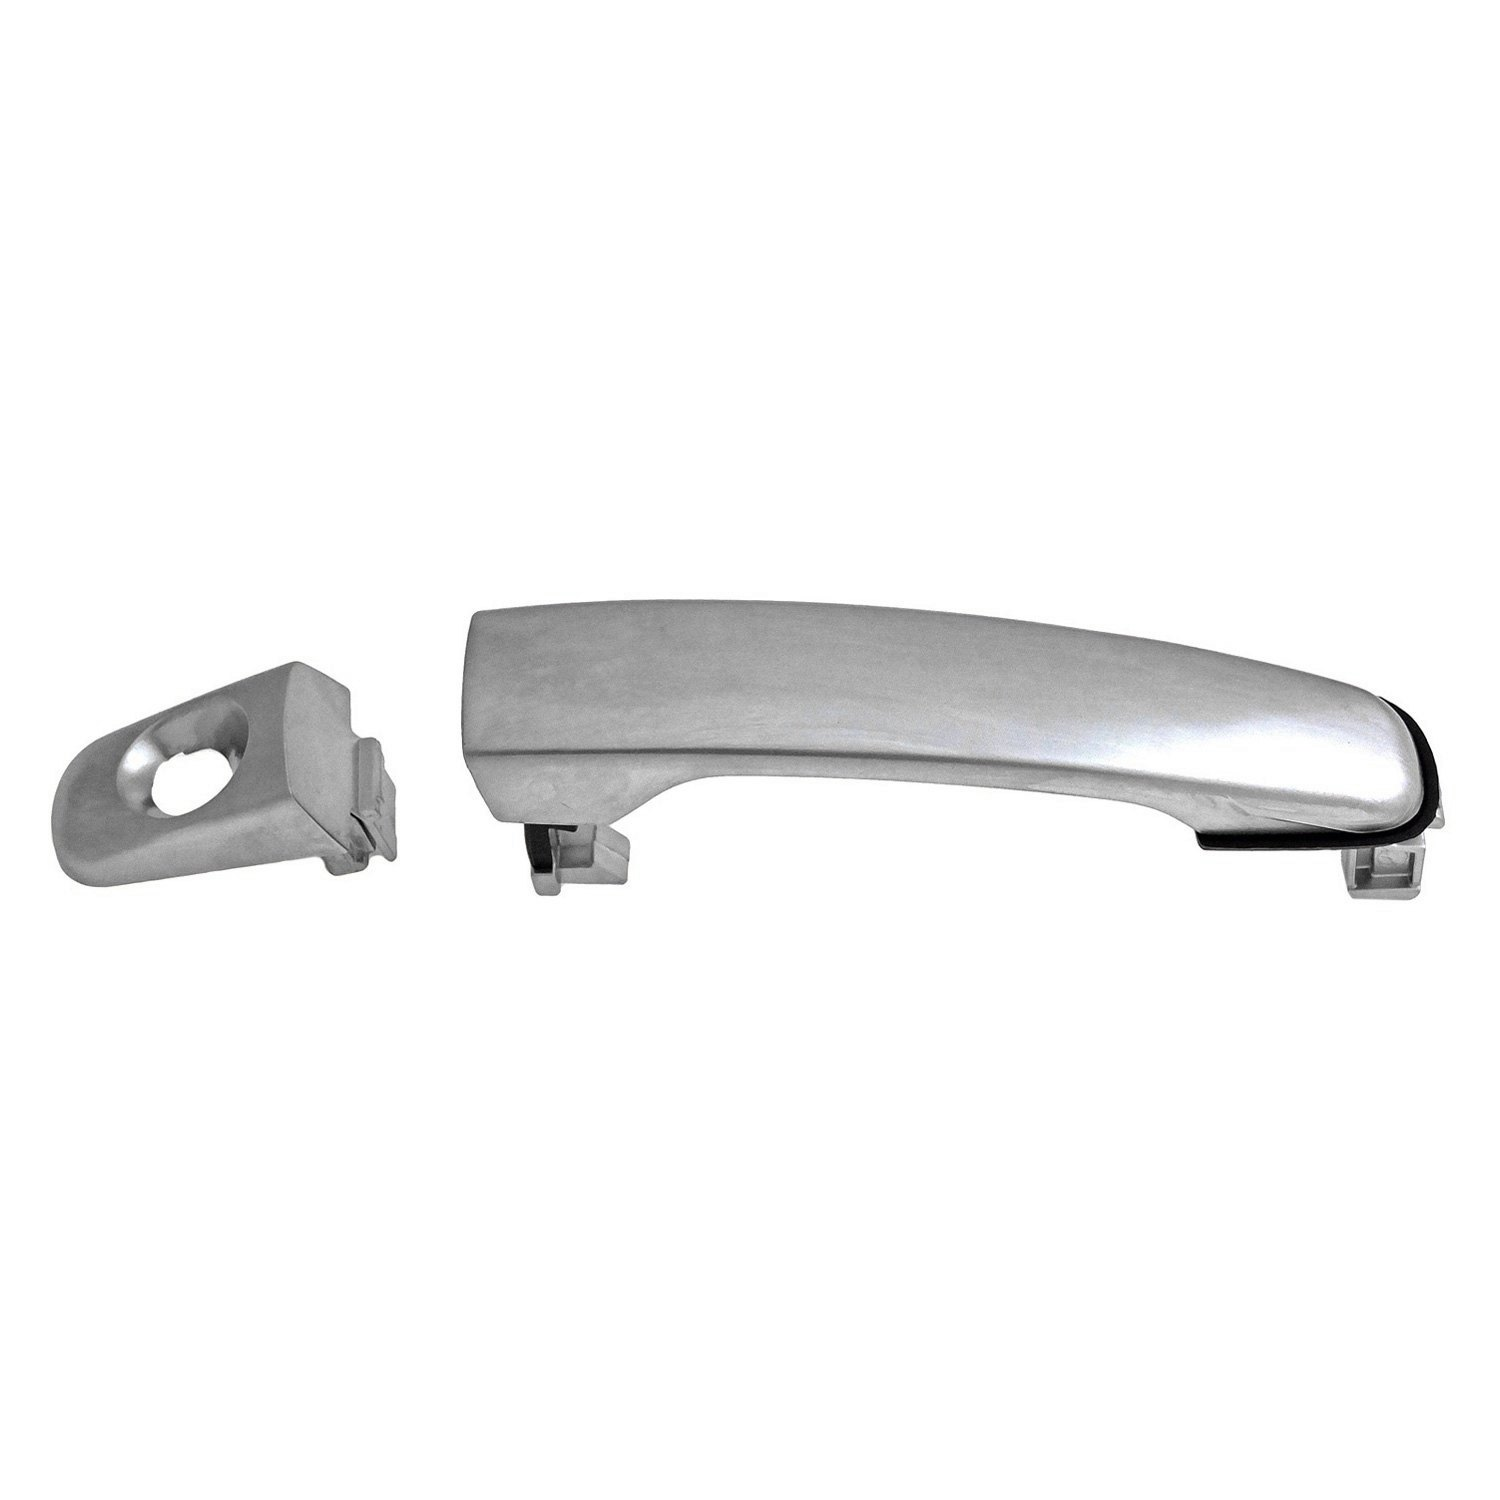 Dorman chevy hhr 2006 exterior door handle for 2006 chevy hhr interior door handle